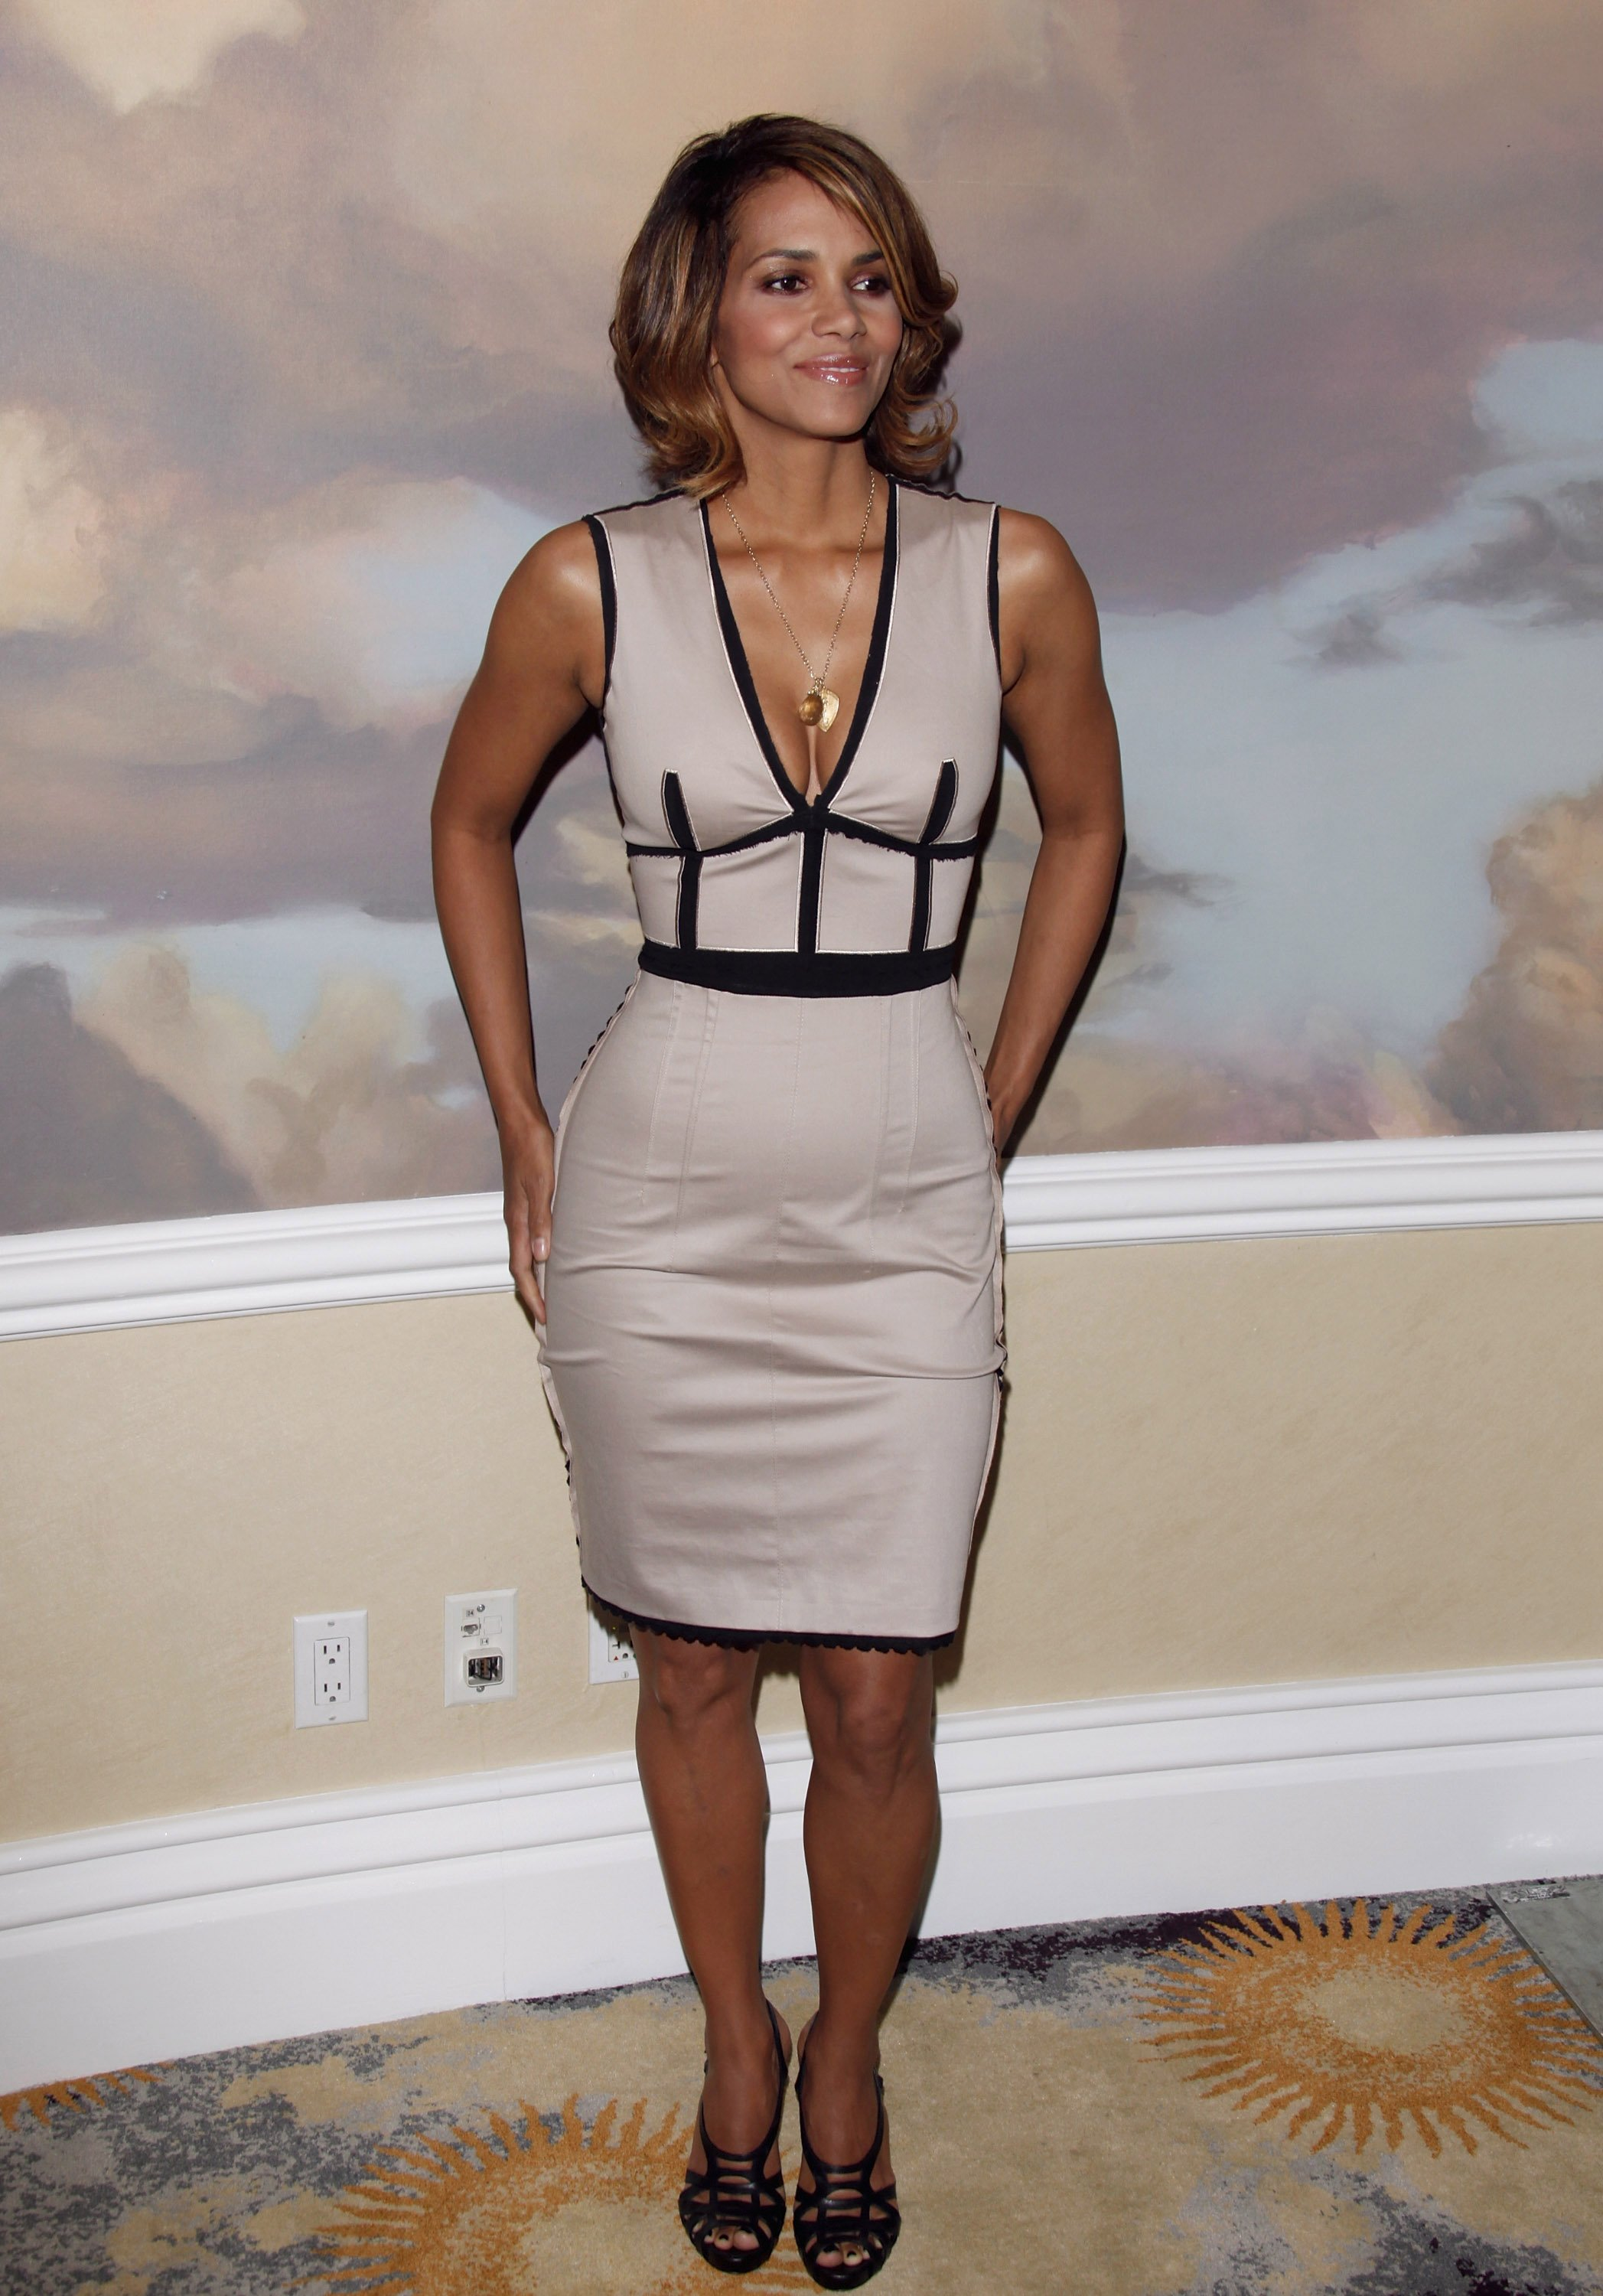 58693_Halle_Berry_2009_Jenesse_Silver_Rose_Gala_Auction_in_Beverly_Hills_120_122_671lo.jpg